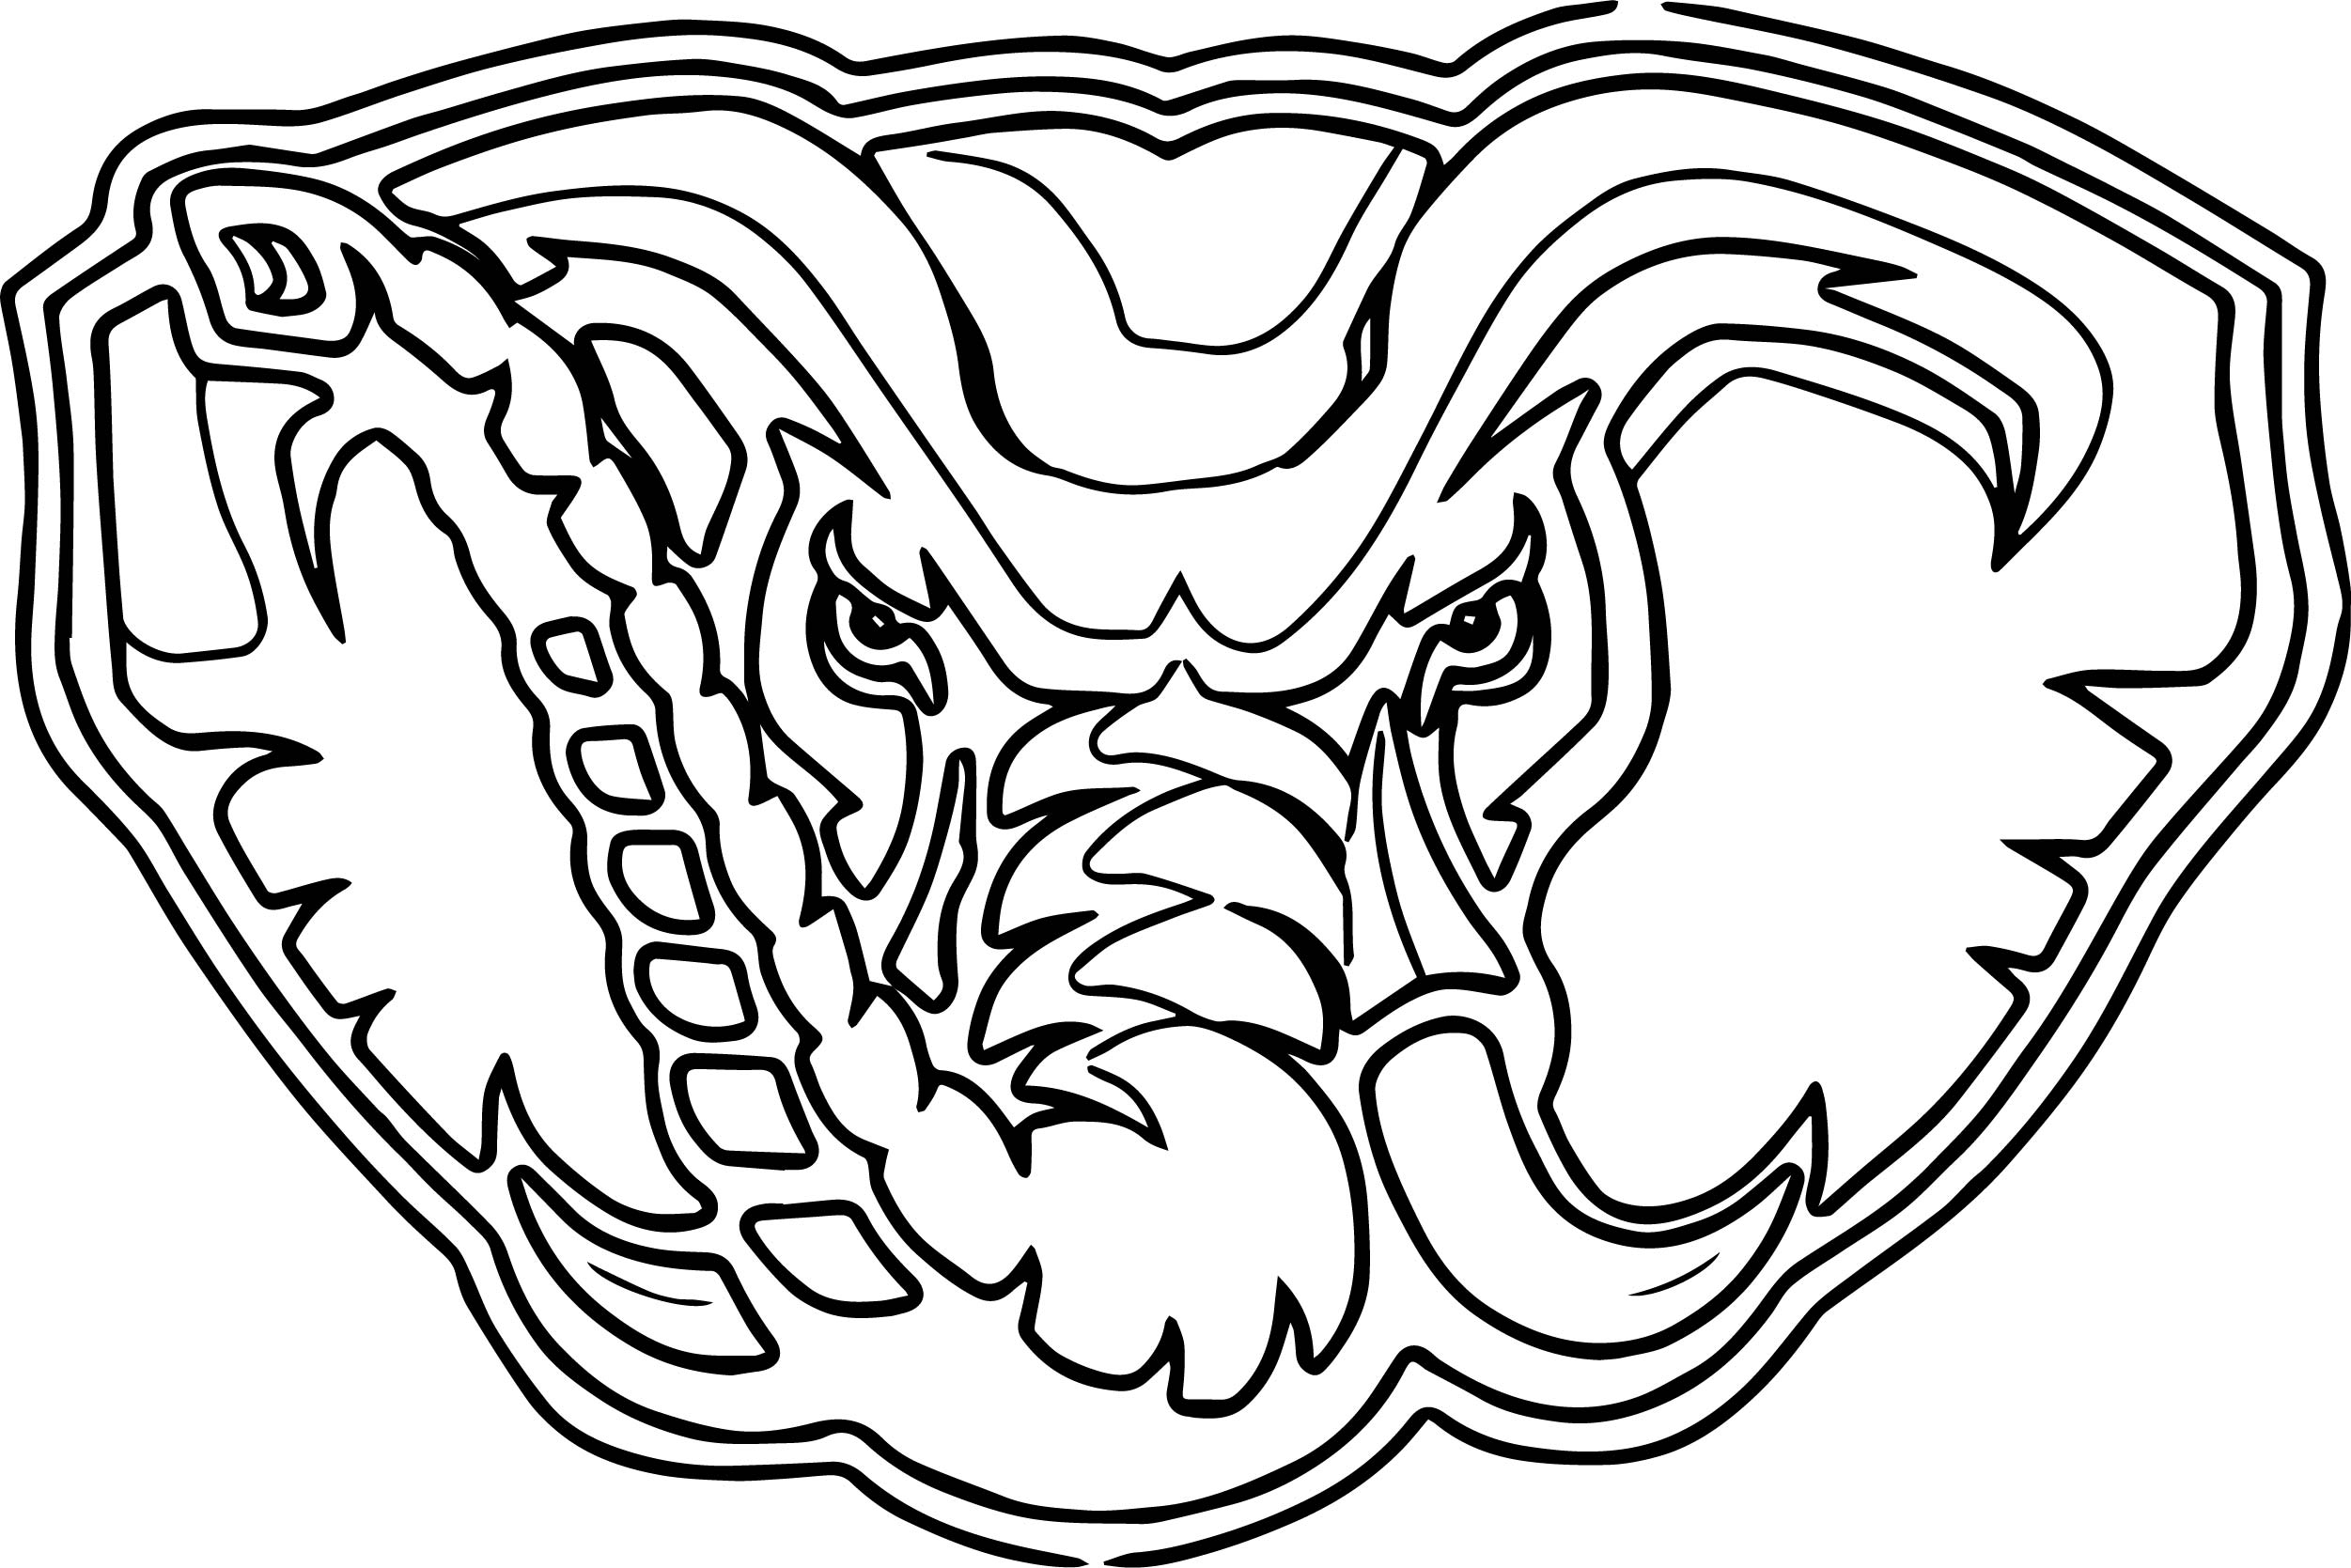 Alabama Elephant Face Outline Coloring Page